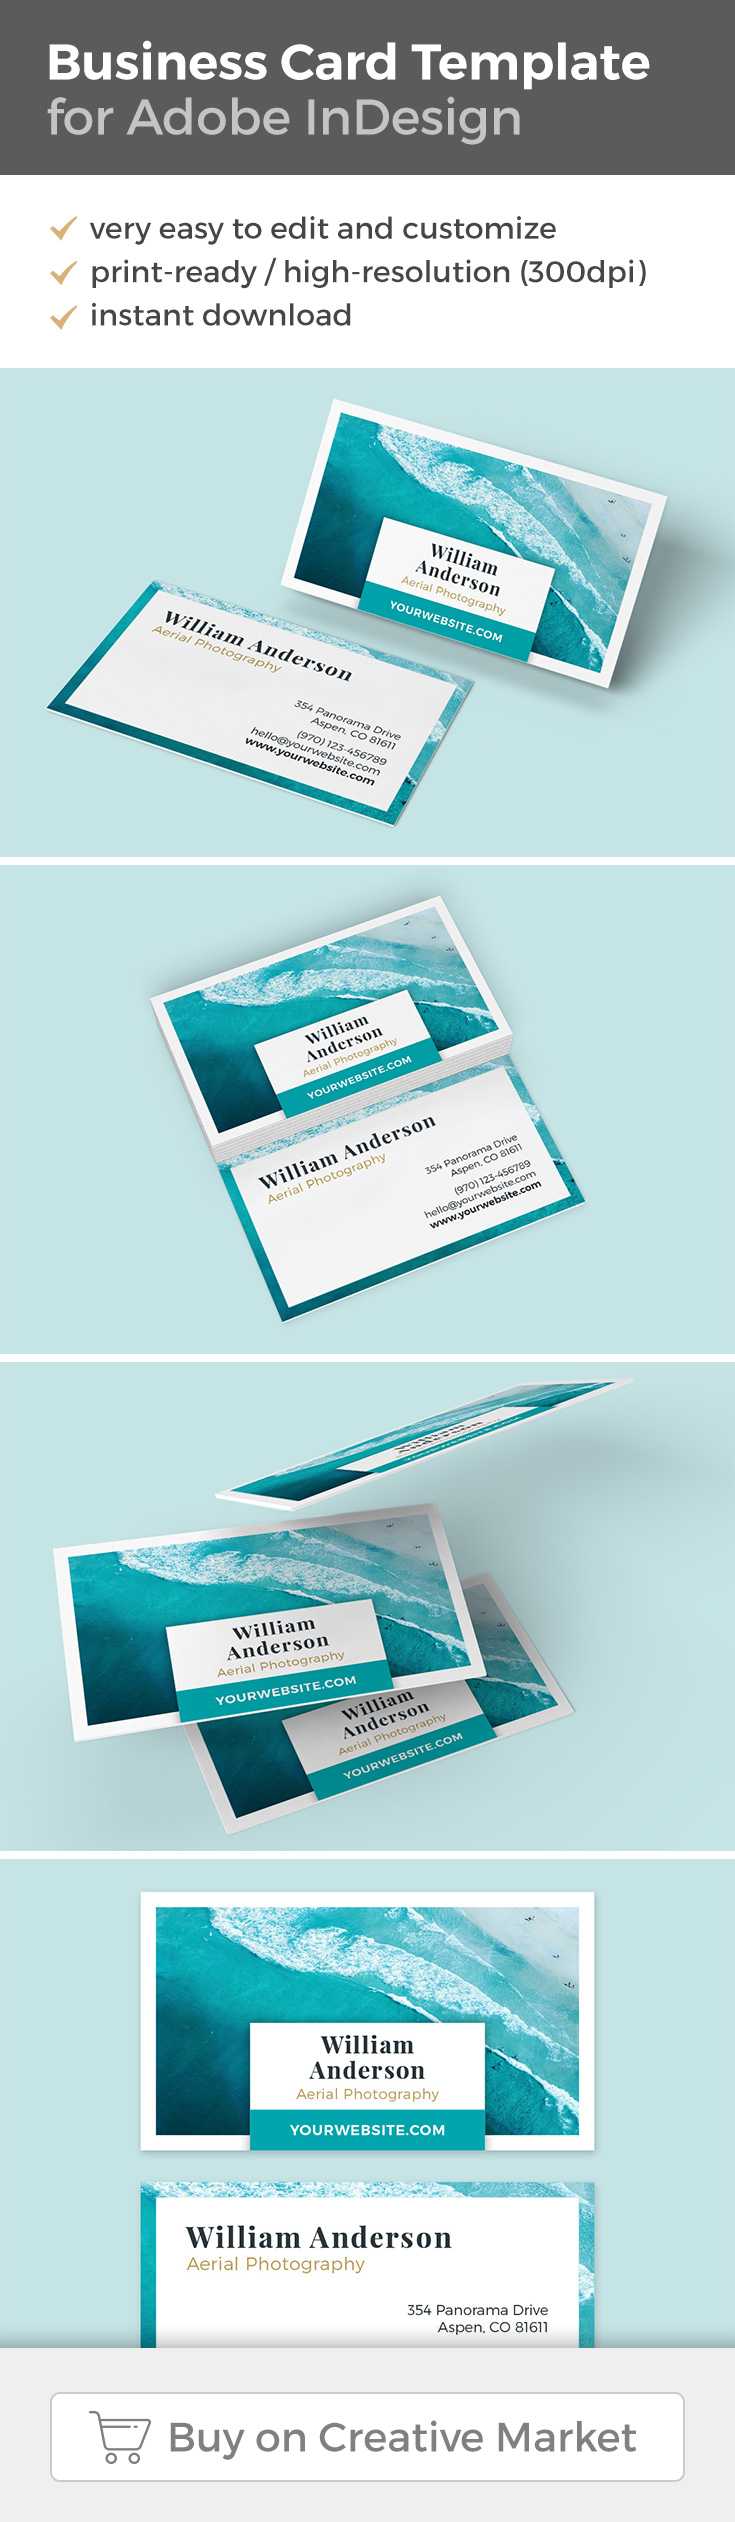 Beautiful business card template for adobe indesign with an ocean beautiful business card template for adobe indesign with an ocean theme fbccfo